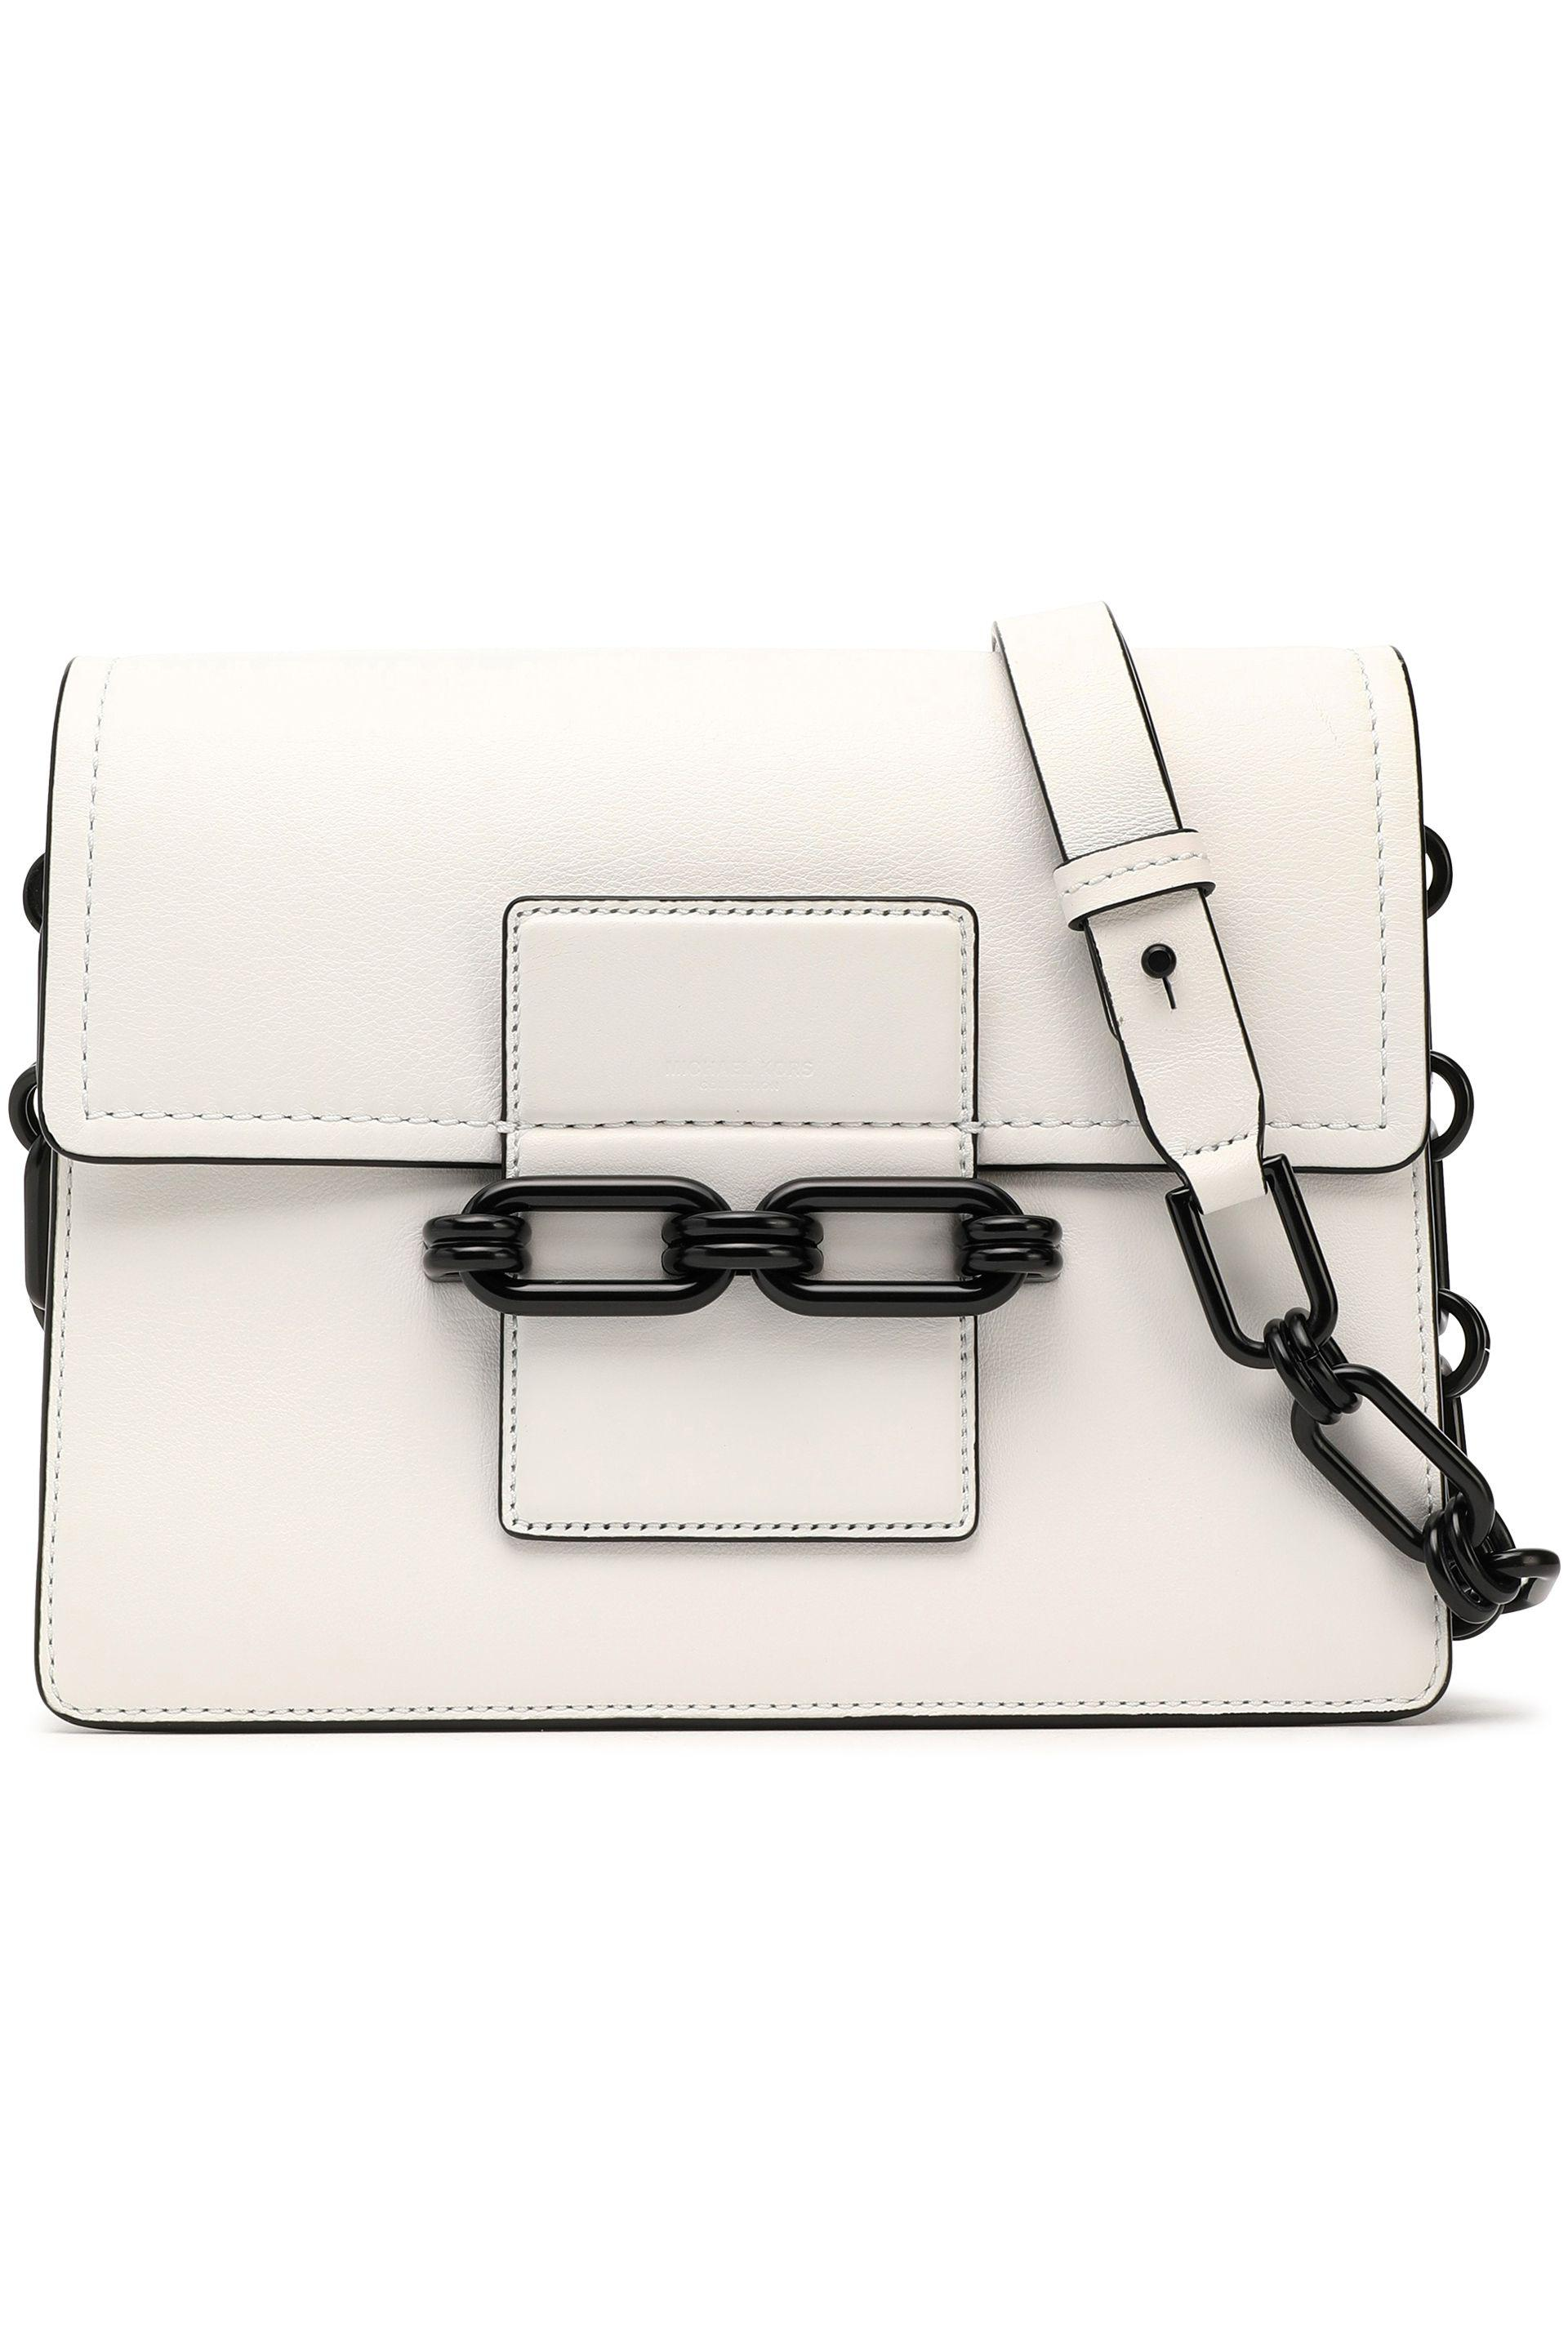 76b2166945fc Gallery. Previously sold at  THE OUTNET.COM · Women s Chain Strap Bags ...